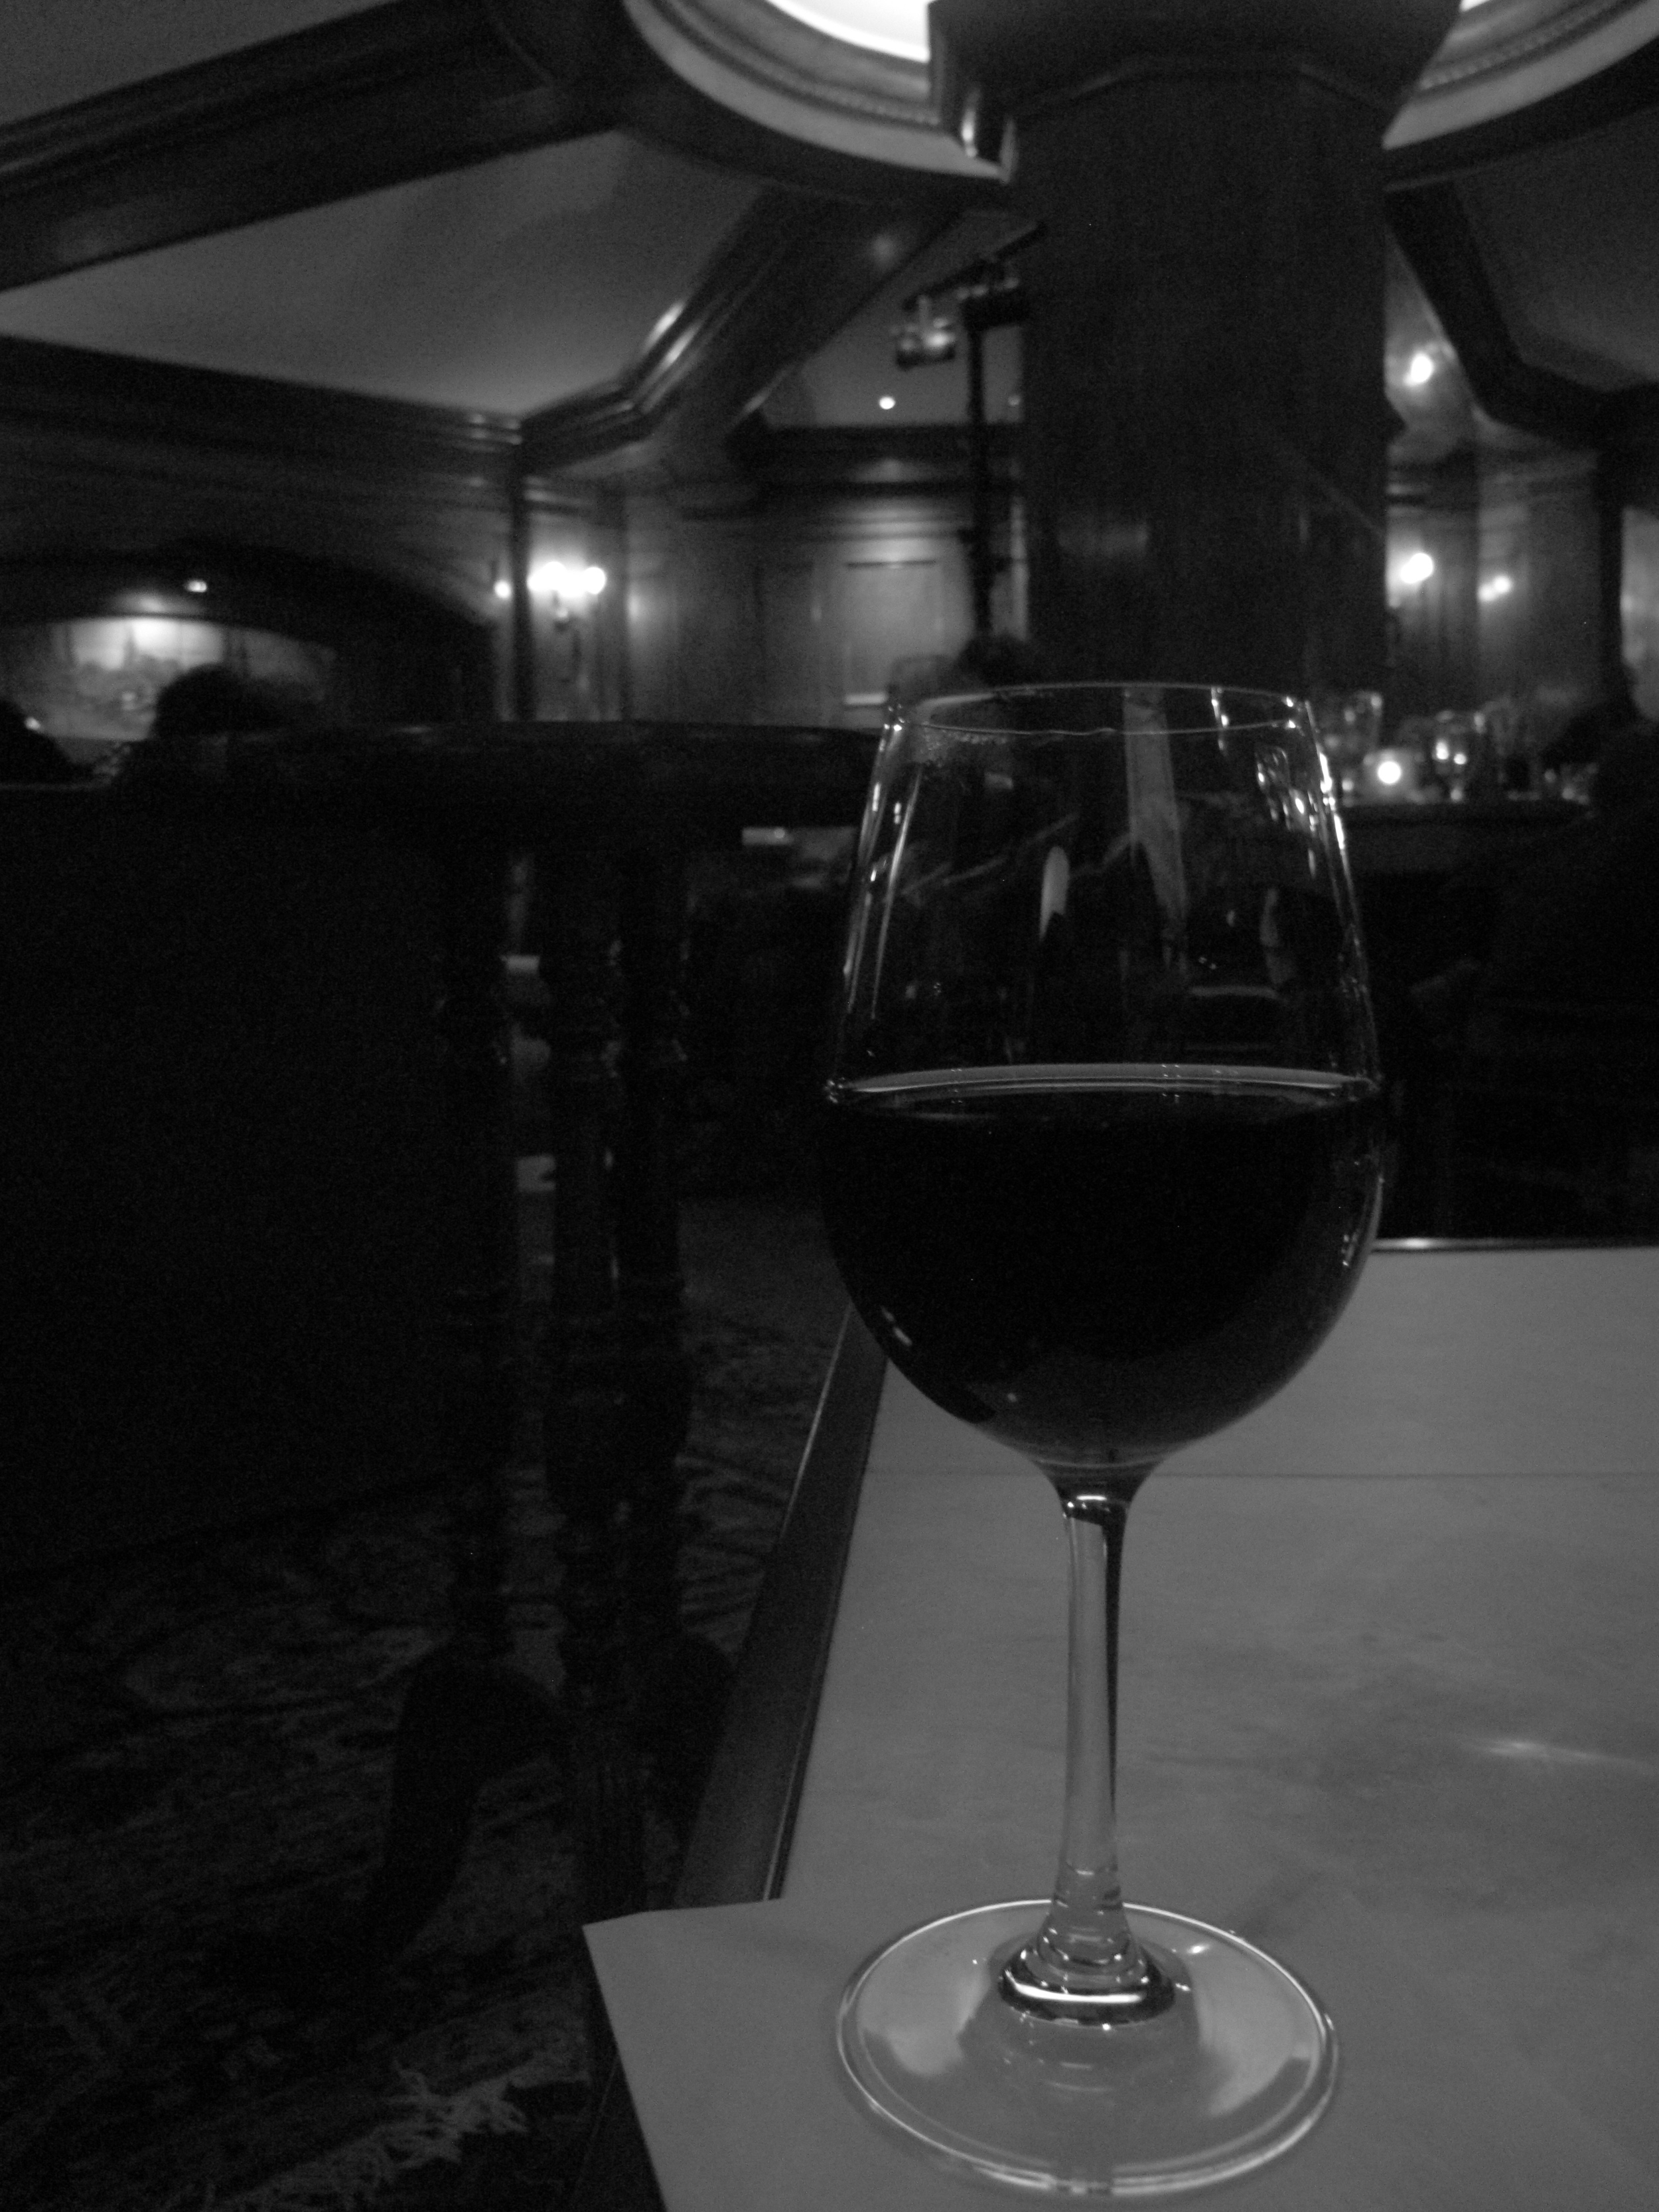 A glass of wine and some jazz in a hotel lobby.